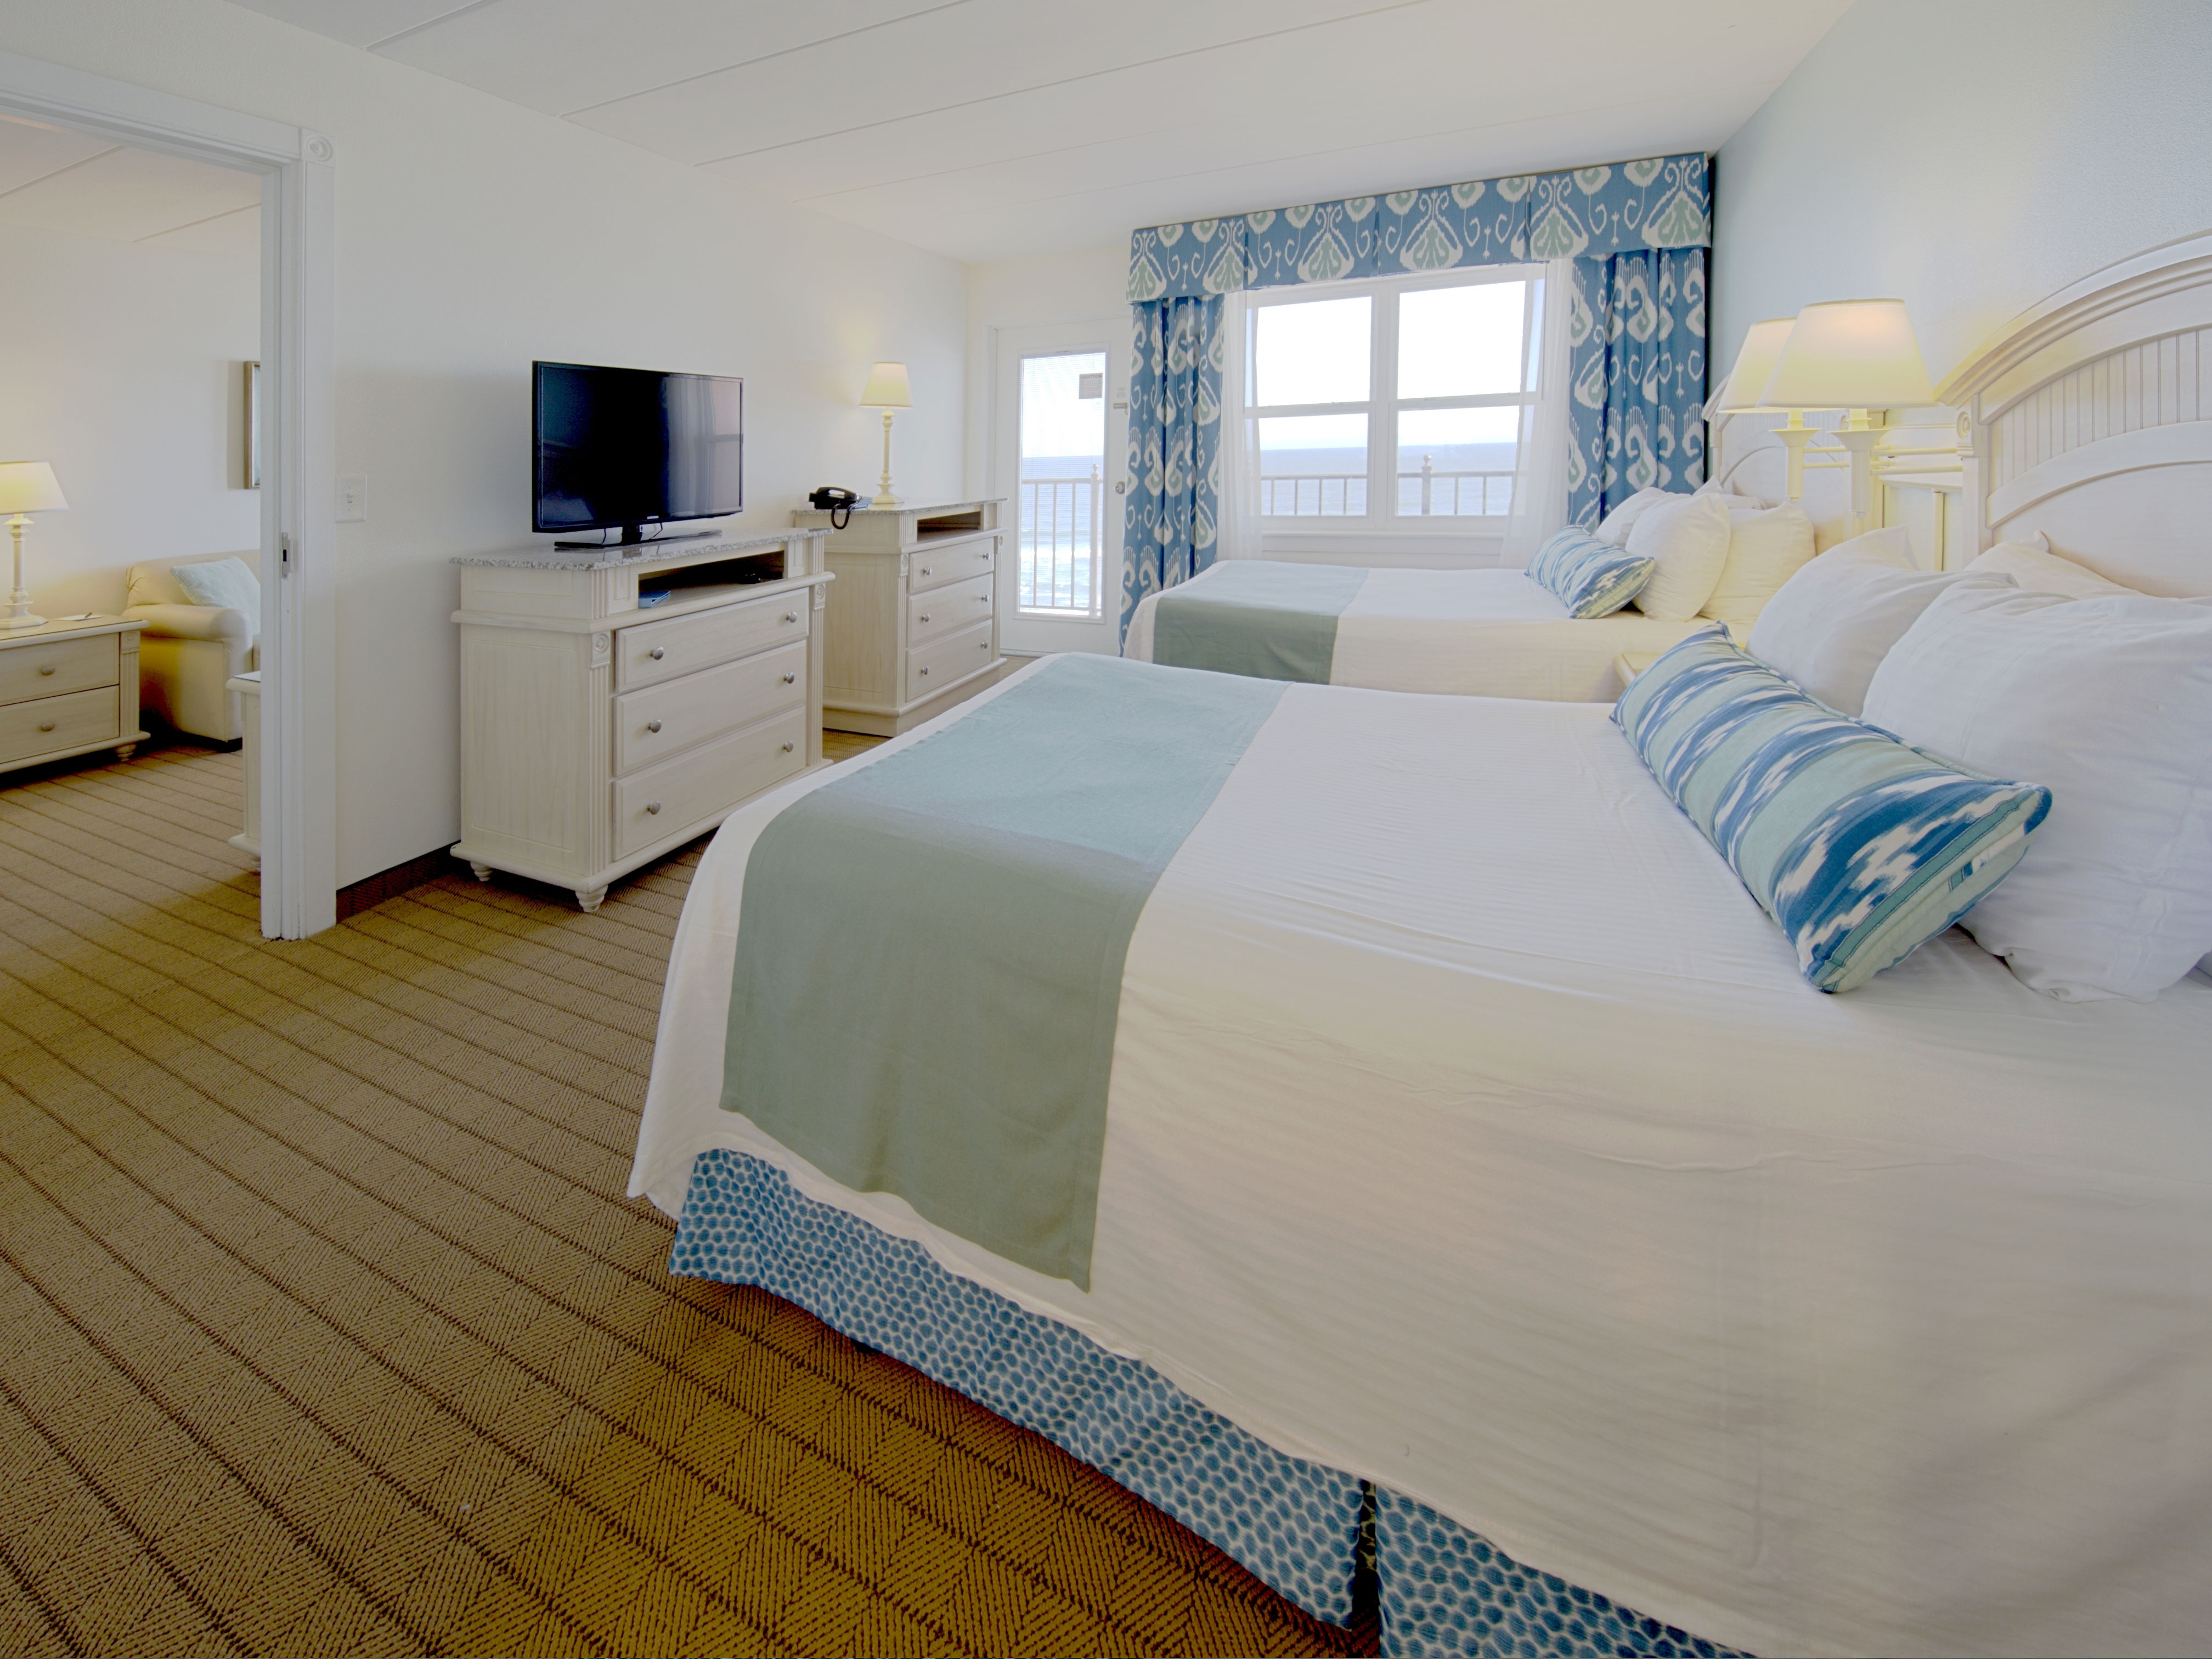 Hotel - Two Room Suite